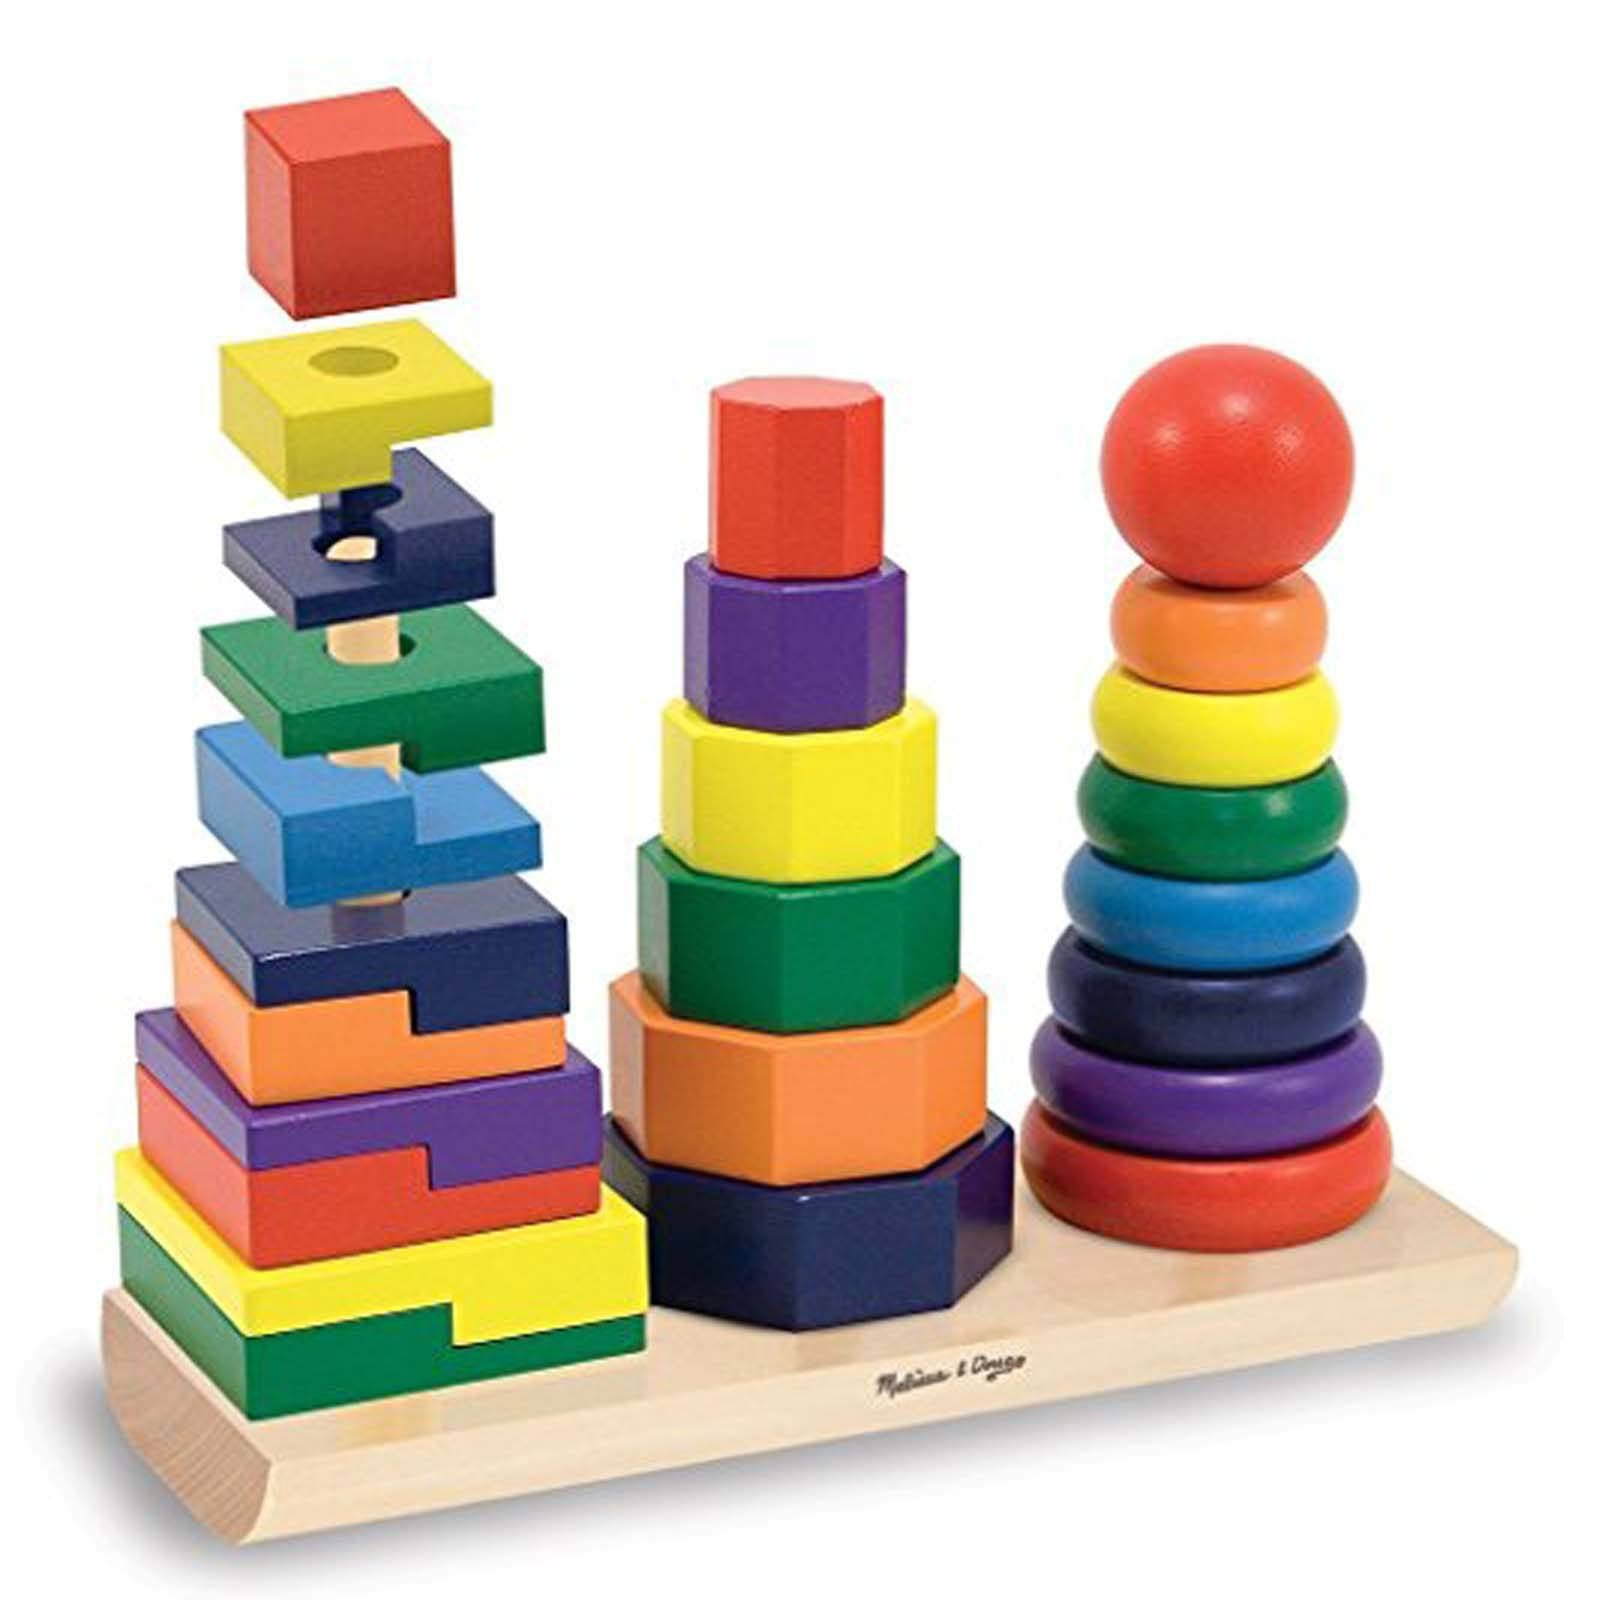 Melissa Doug Toys : Geometric stacking blocks toy kid s wooden classic